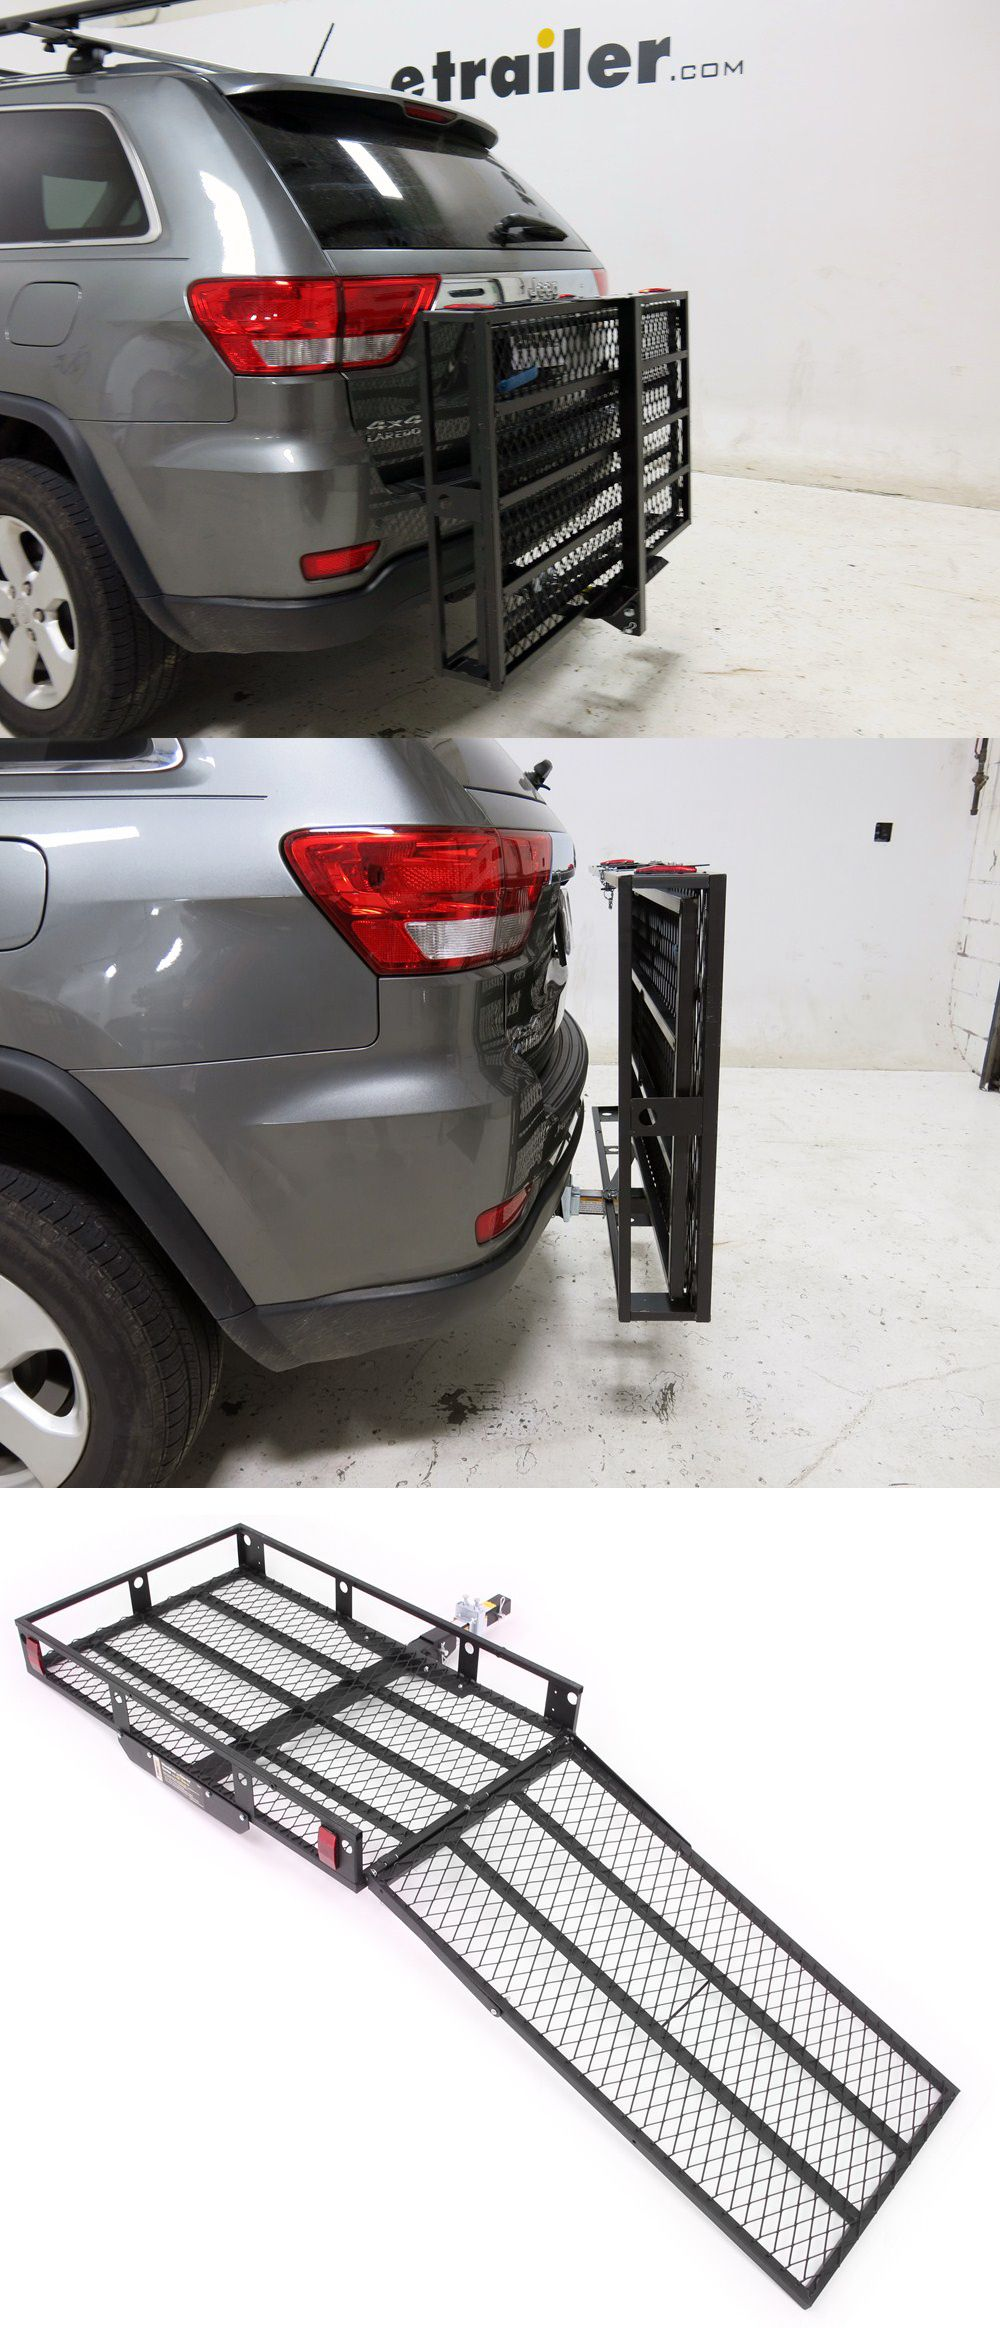 Maxxtow 30x50 Wheelchair Carrier W 48 Long Ramp 2 Hitches Folding Steel 500 Lbs Maxxtow H Cargo Carrier Hitch Cargo Carrier Hitch Mounted Cargo Carrier